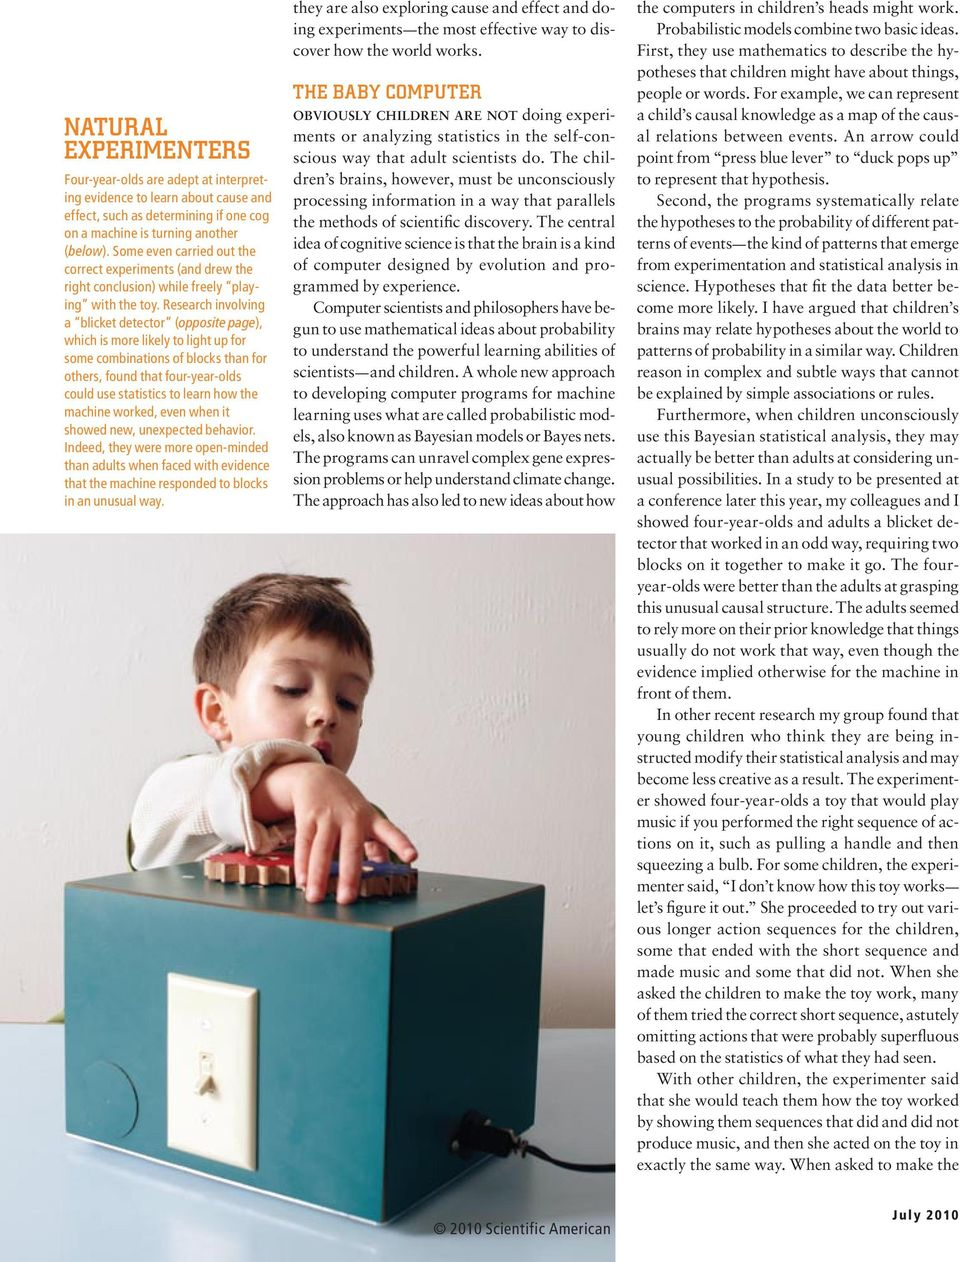 Research involving a blicket detector (opposite page), which is more likely to light up for some combinations of blocks than for others, found that four-year-olds could use sta tistics to learn how